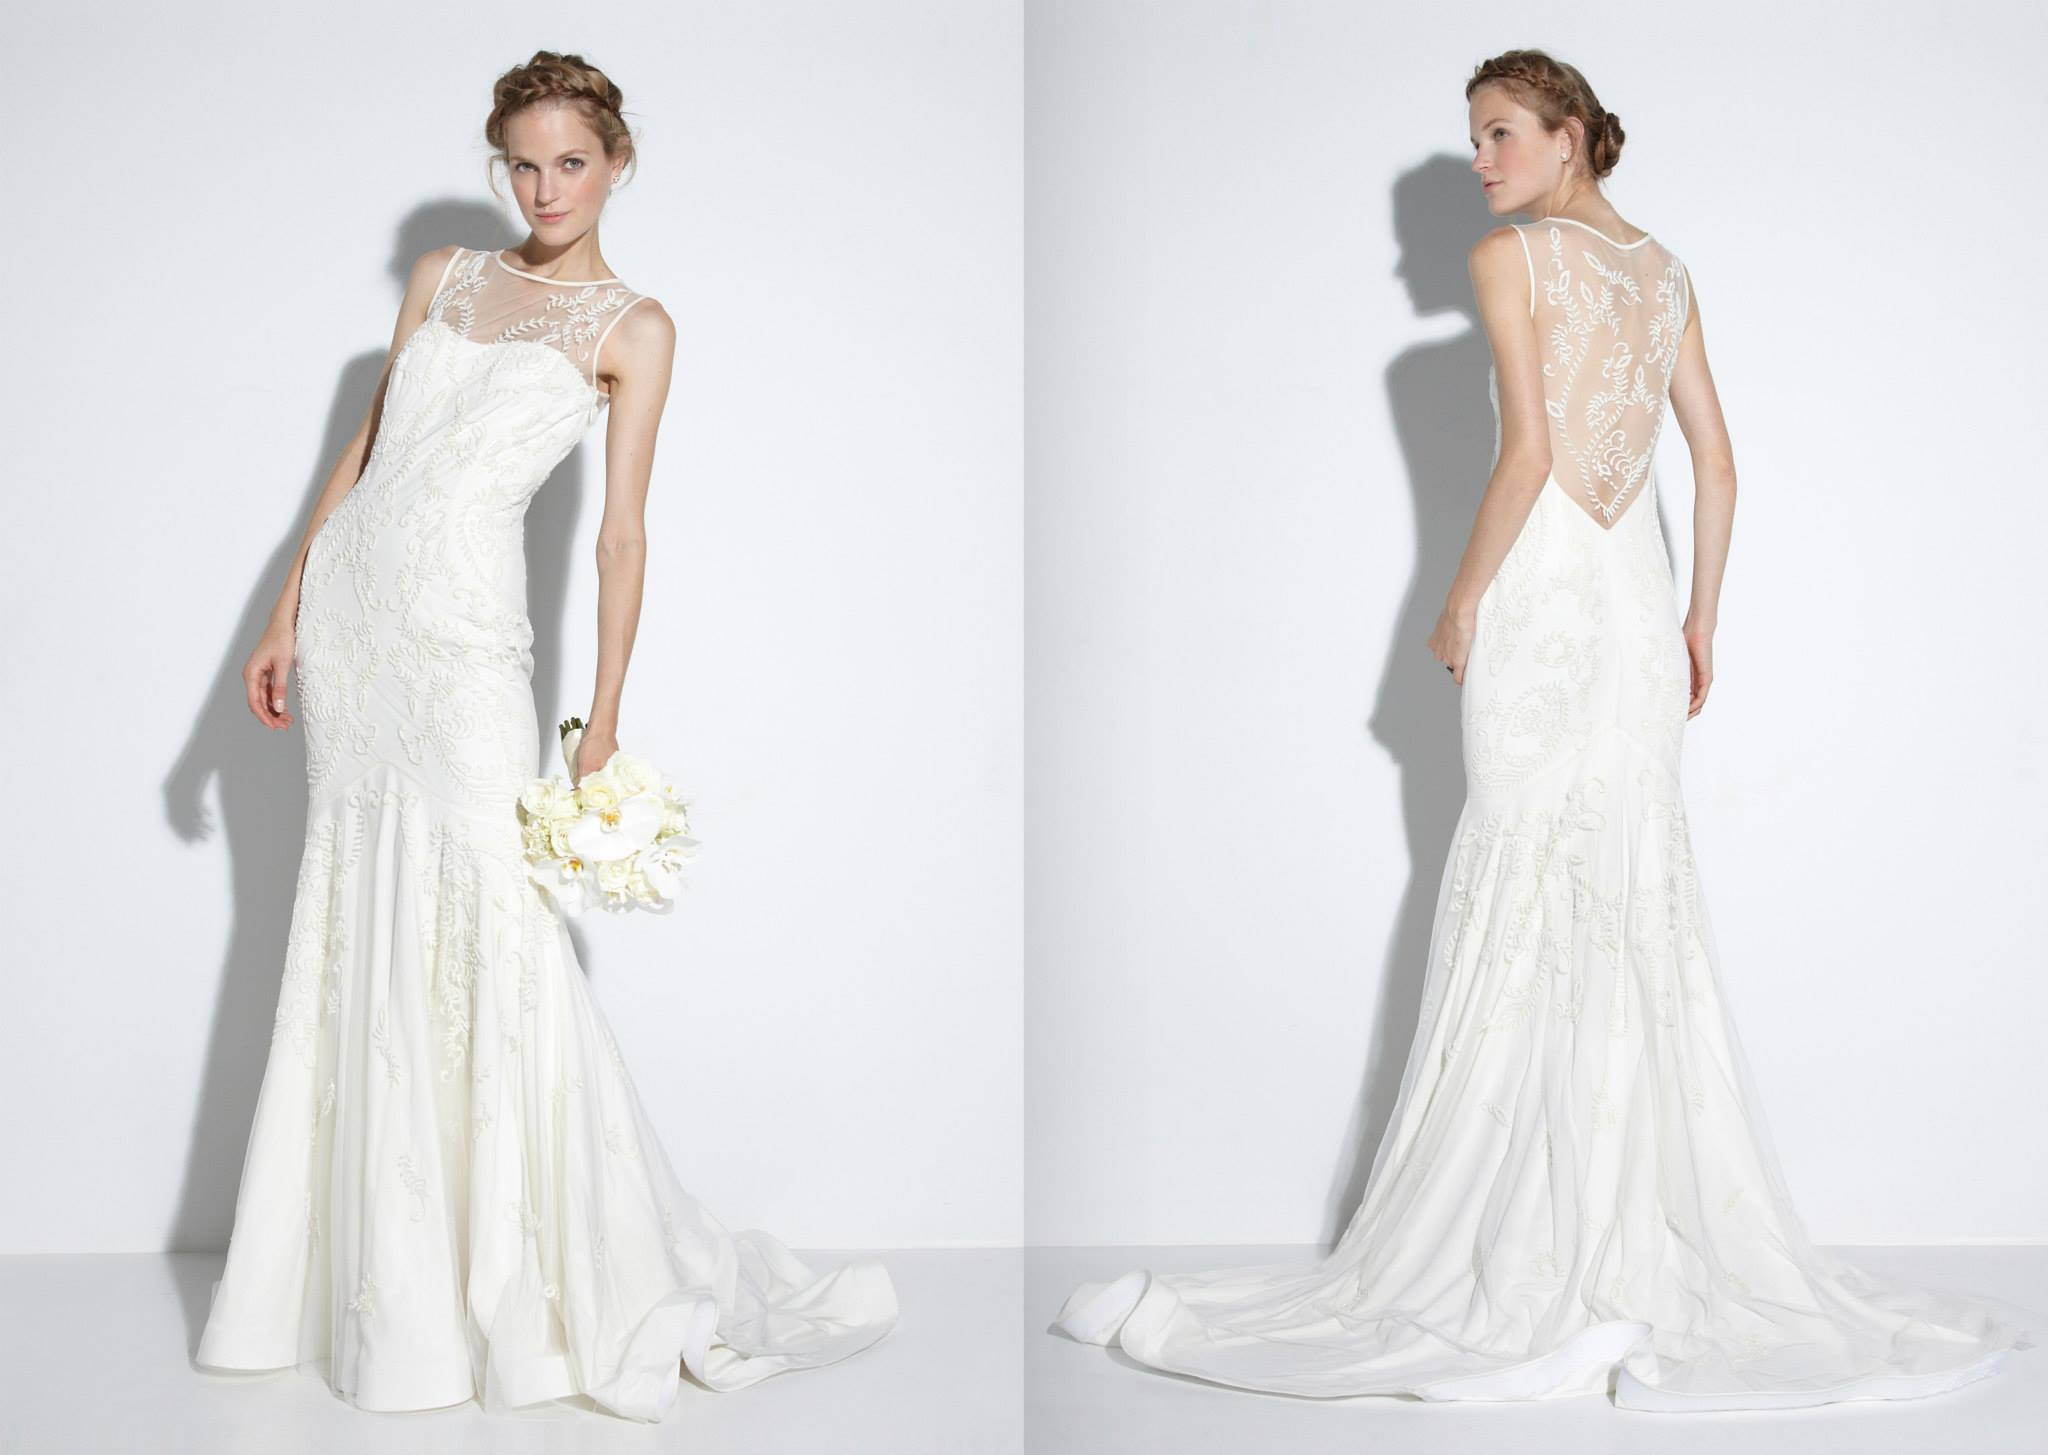 Nicole miller wedding dresses choice image wedding dress for Wedding dress rental omaha